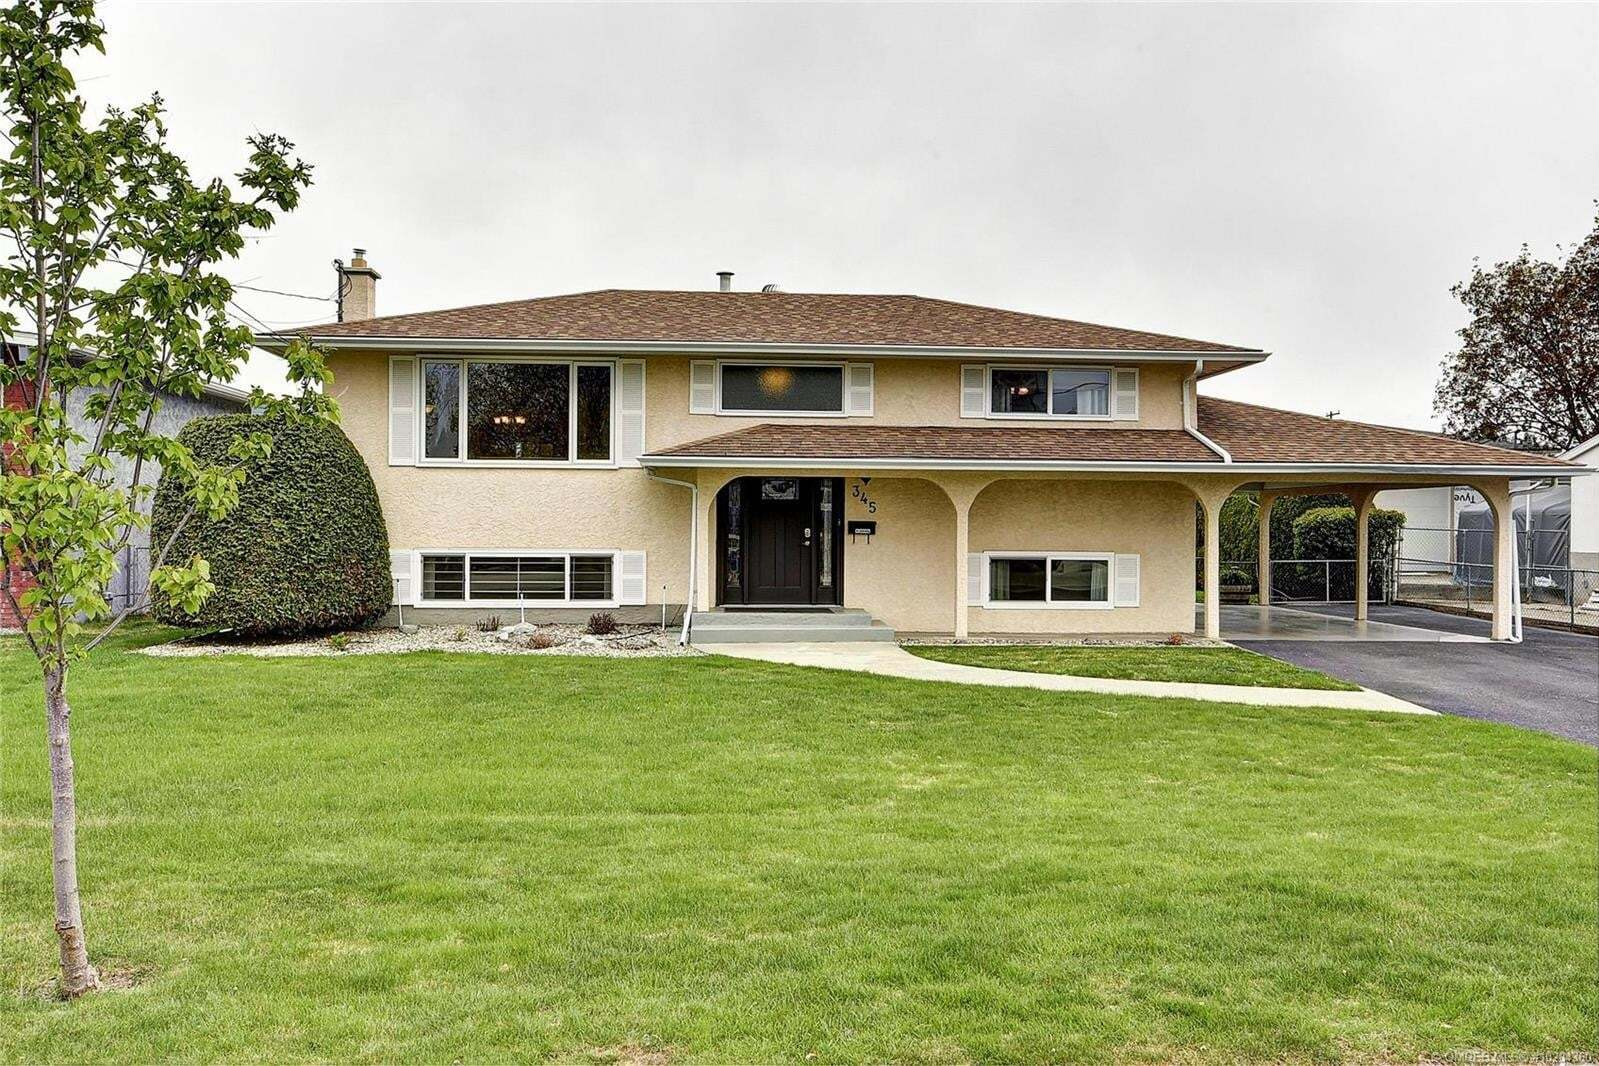 House for sale at 345 Husch Rd Kelowna British Columbia - MLS: 10204360